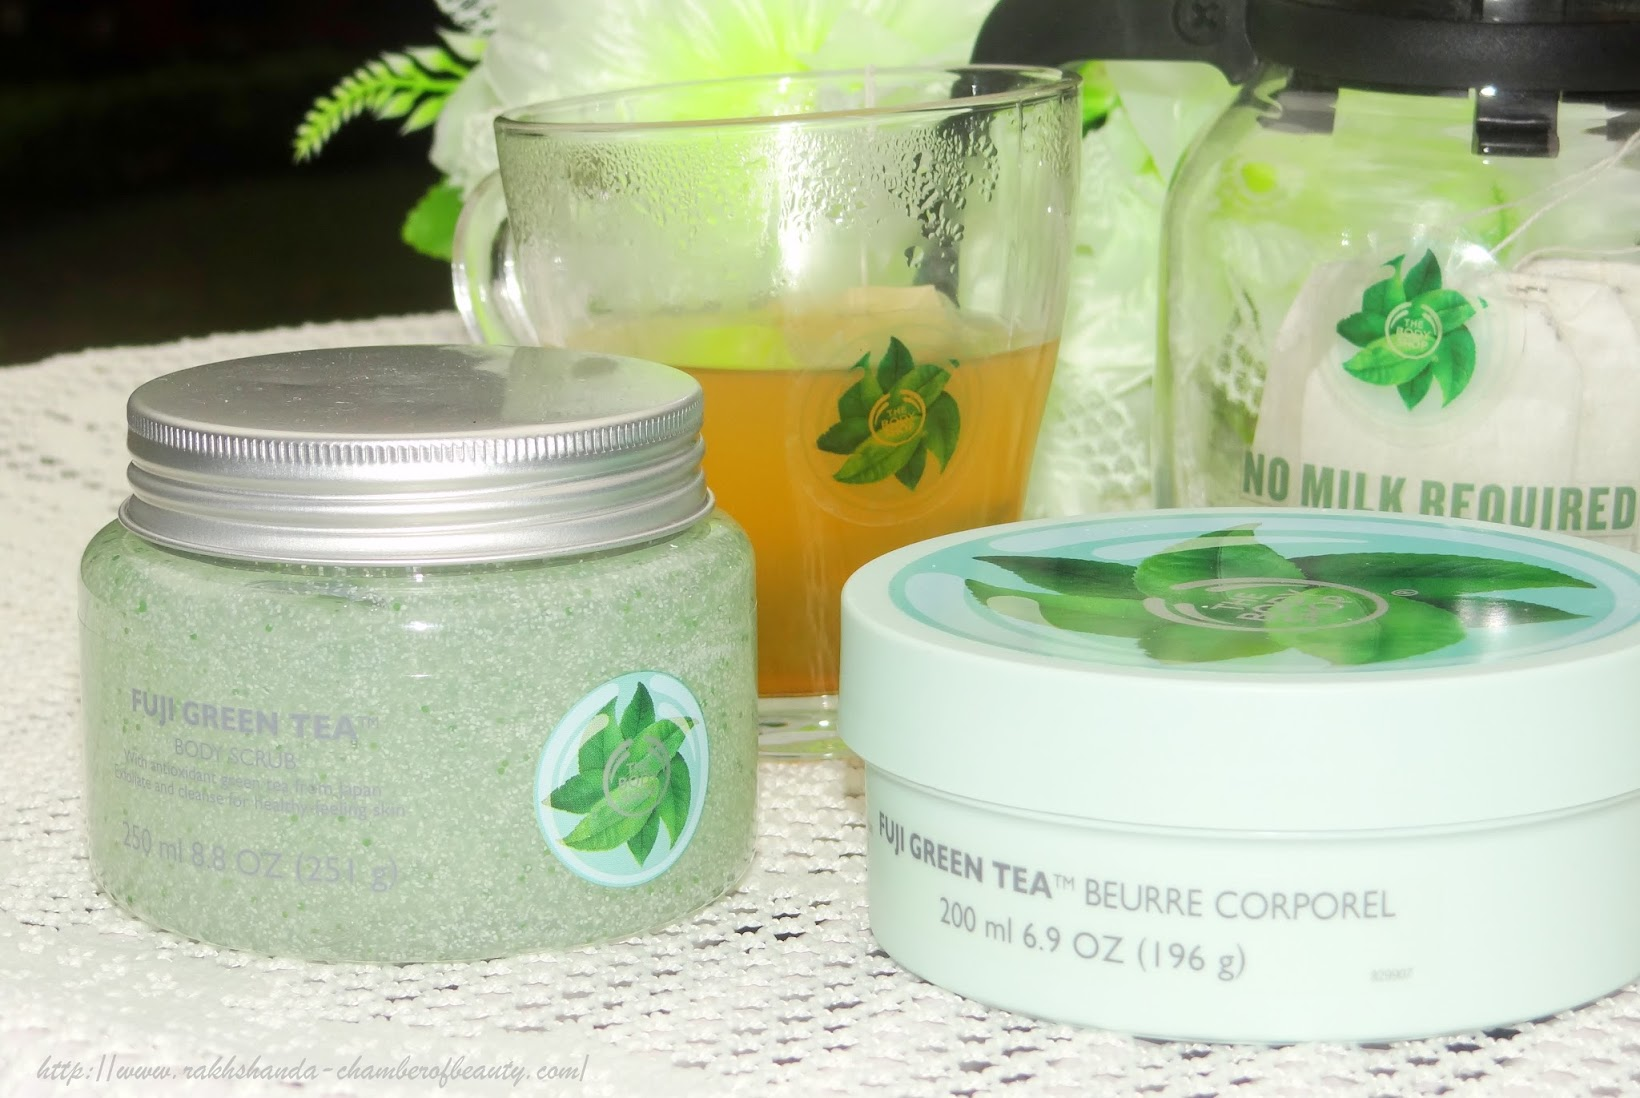 The Body Shop Fuji Green Tea collection- First look | Fuji Green tea body butter & body scrub, #TeaWithTheBodyShop, Fuji Green Tea Body butter, body scrub, bodycare products, Indian beauty blogger, Chamber of Beauty